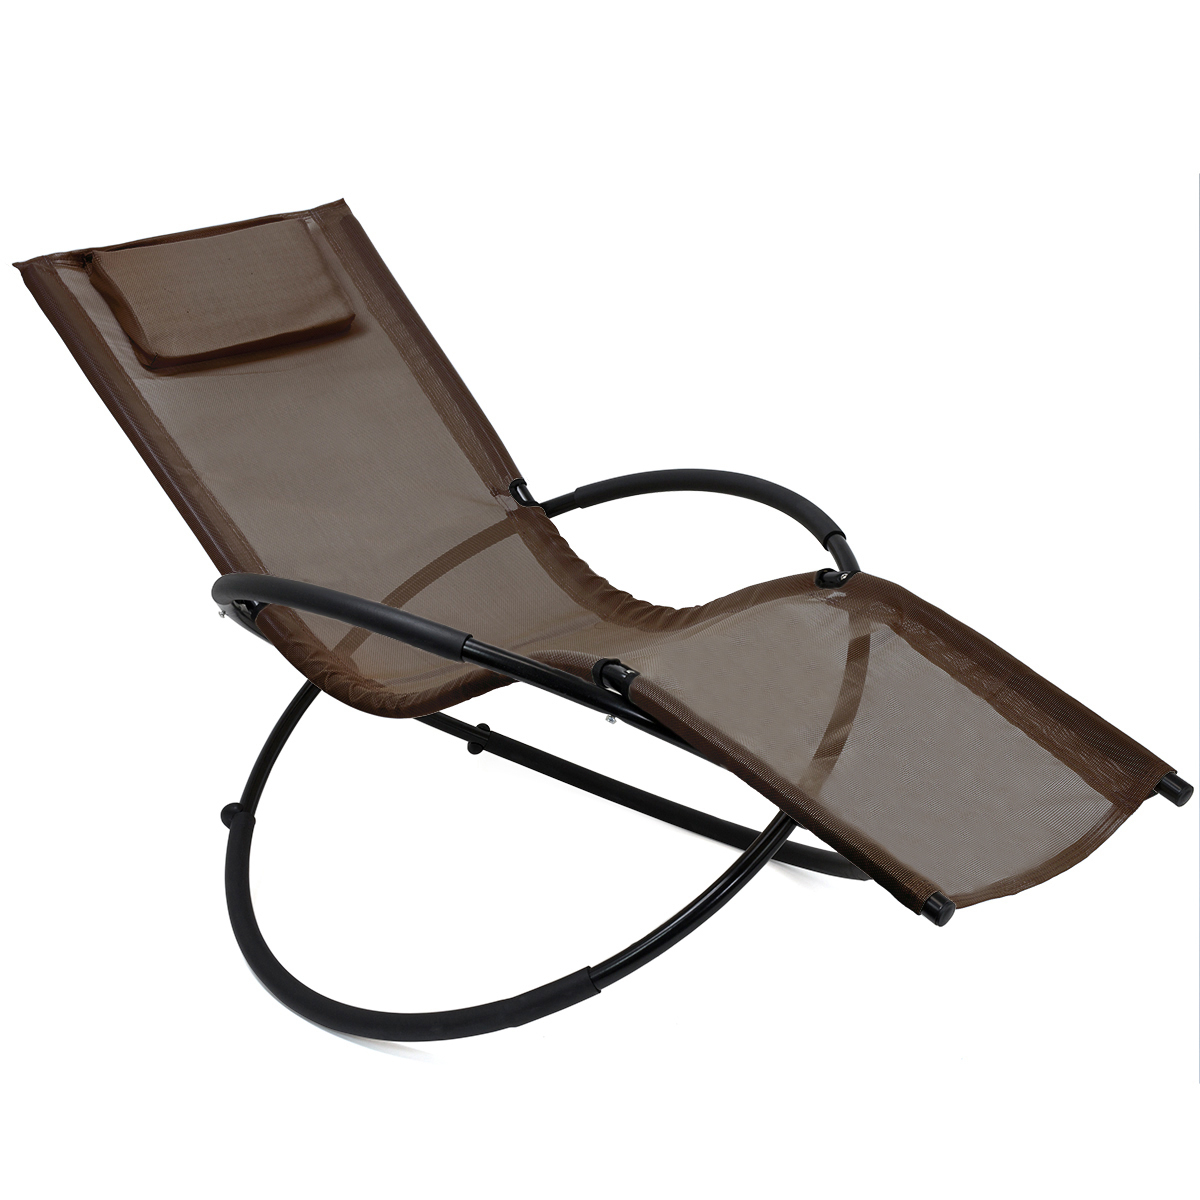 Orbital Patio Lounger Rocking Chairs Pertaining To Newest Details About Folding Orbit Zero Gravity Chair Patio Garden Lounger Rocking  Outdoor, Brown (View 14 of 25)